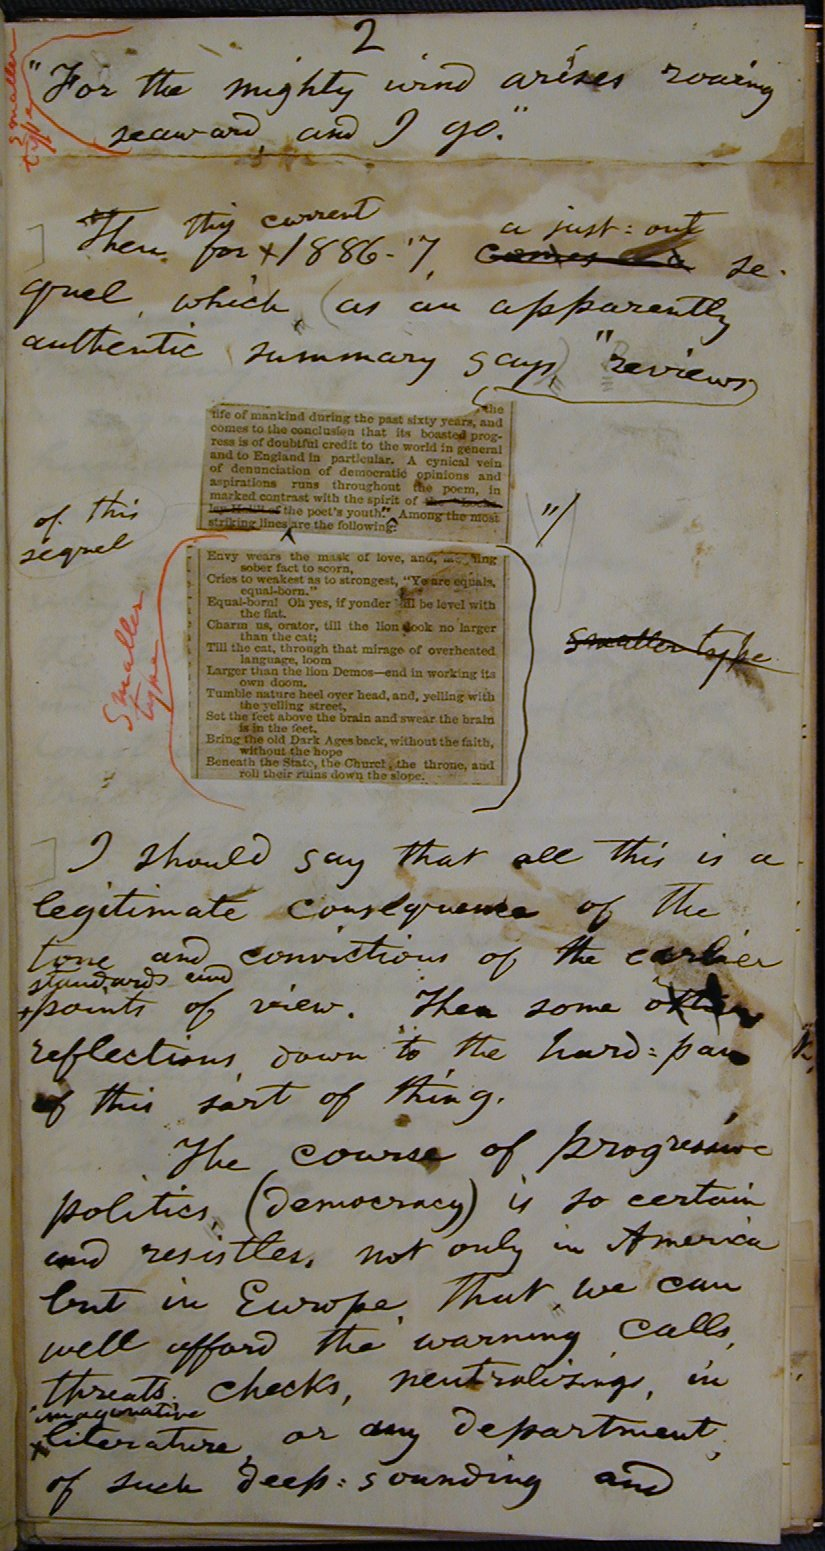 walt whitman research paper research paper about walt whitman